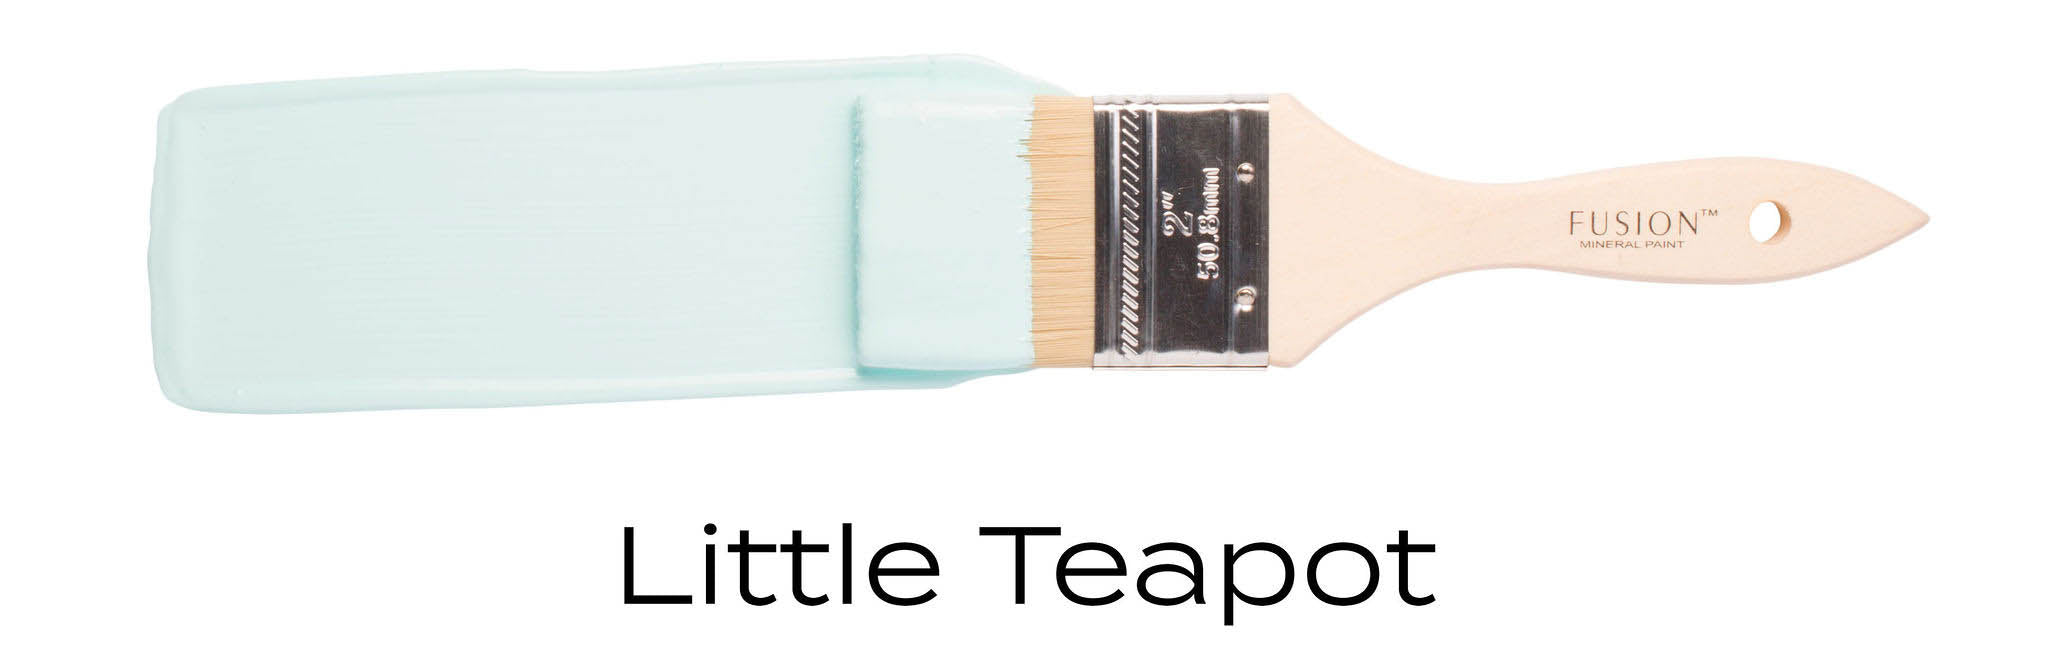 little teapot tones for tots fusion mineral paint, child friendly furniture paint uk